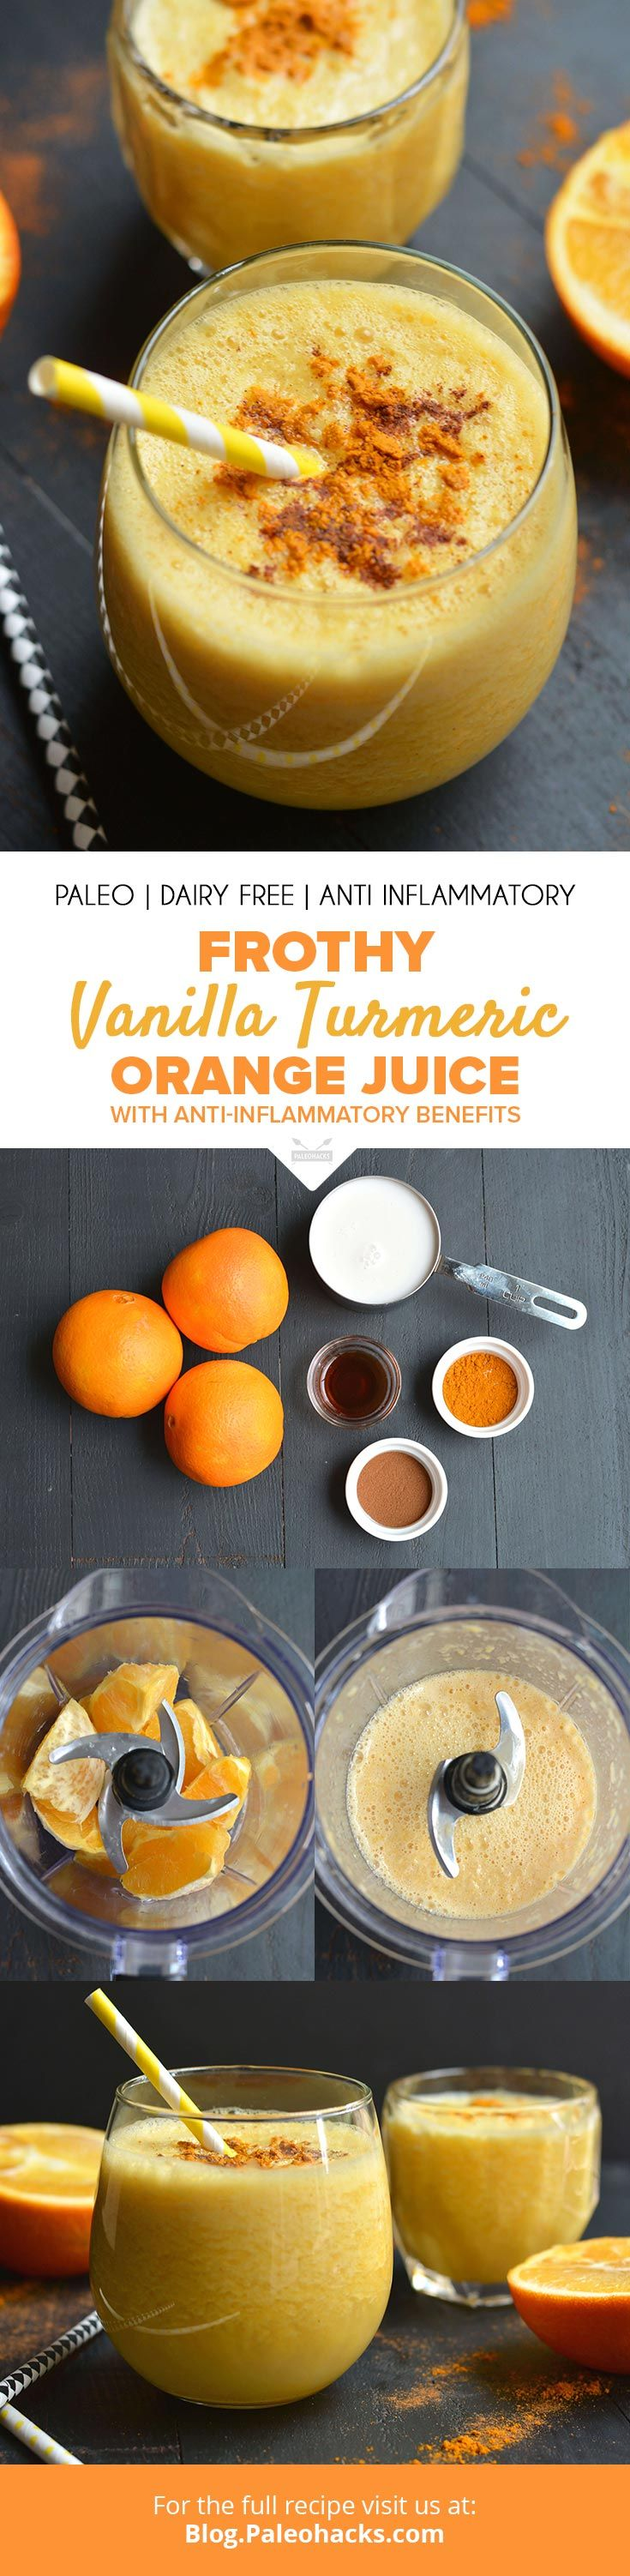 Give your immune system an anti-inflammatory boost with this vibrant vanilla turmeric orange juice! get the full recipe here: http://paleo.co/turmorangejuice